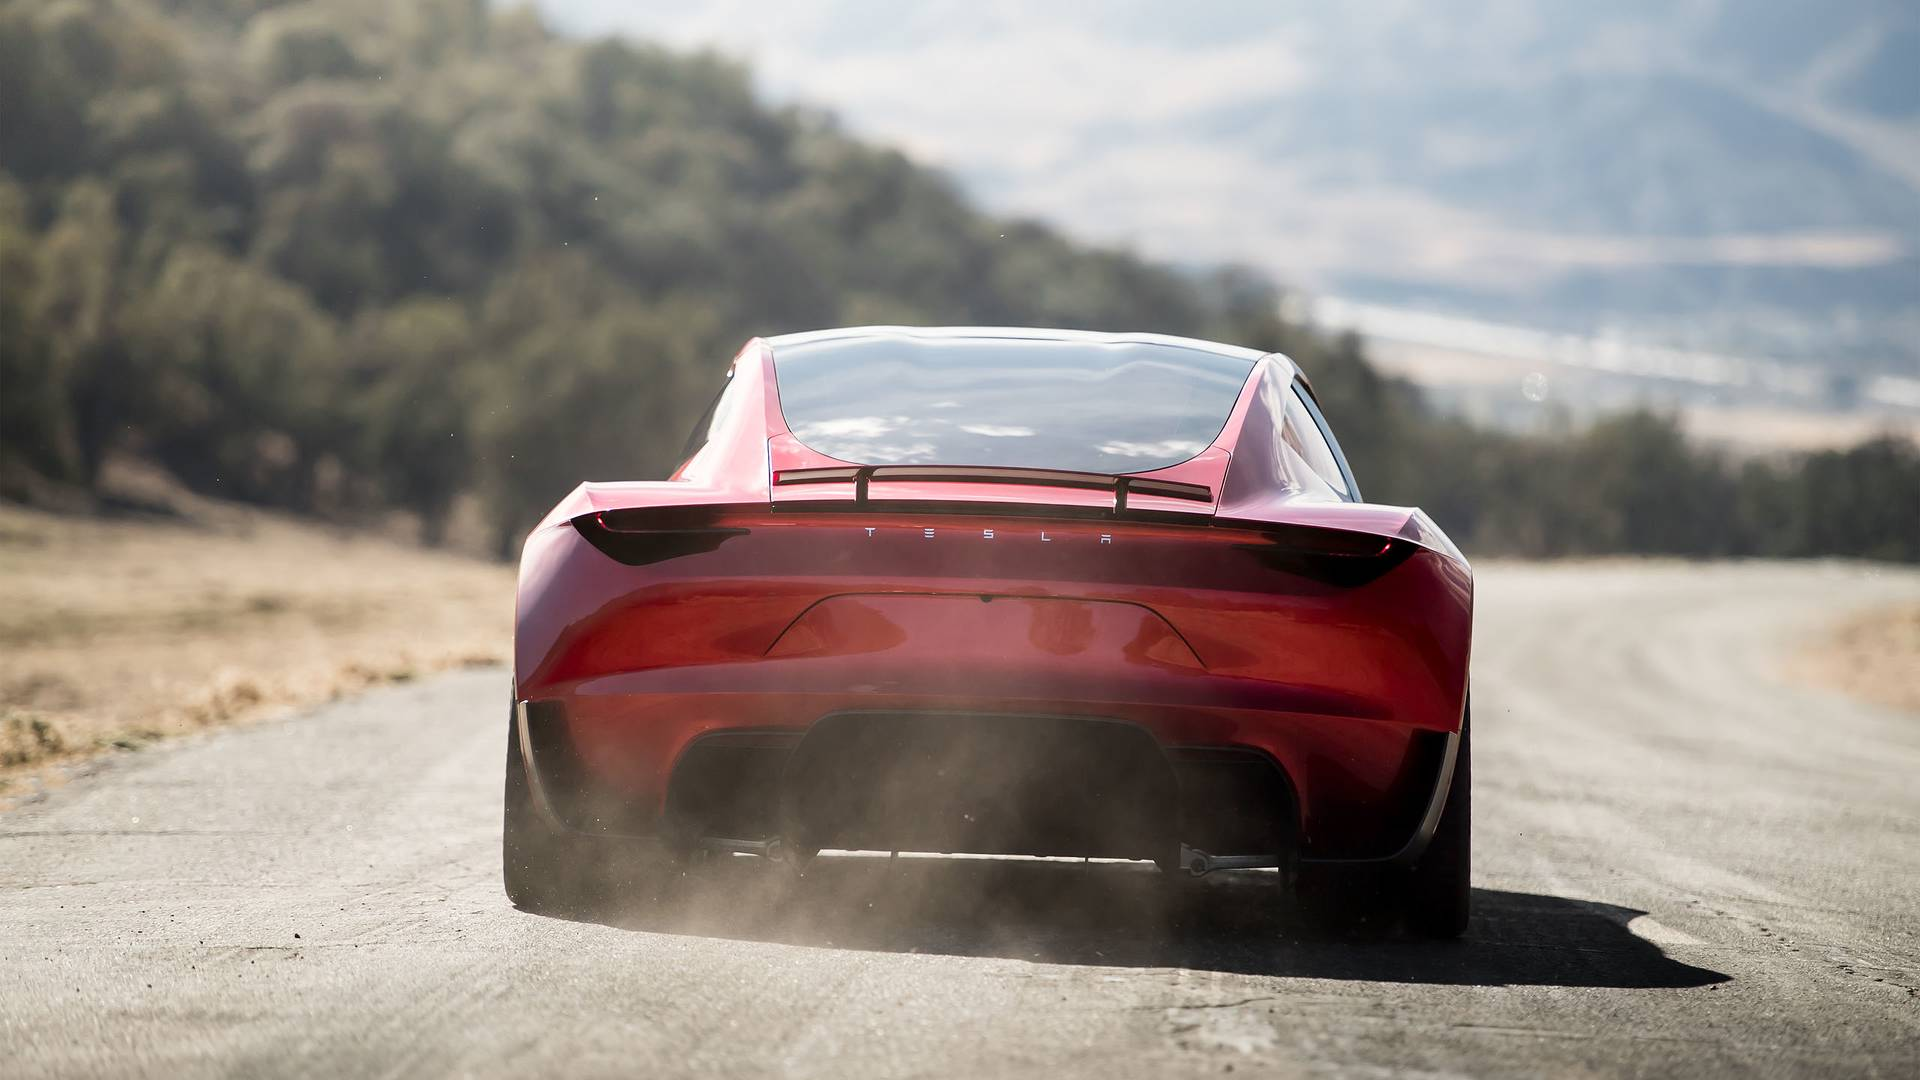 2020 Tesla Roadster With SpaceX Thrusters: What's The Benefit?